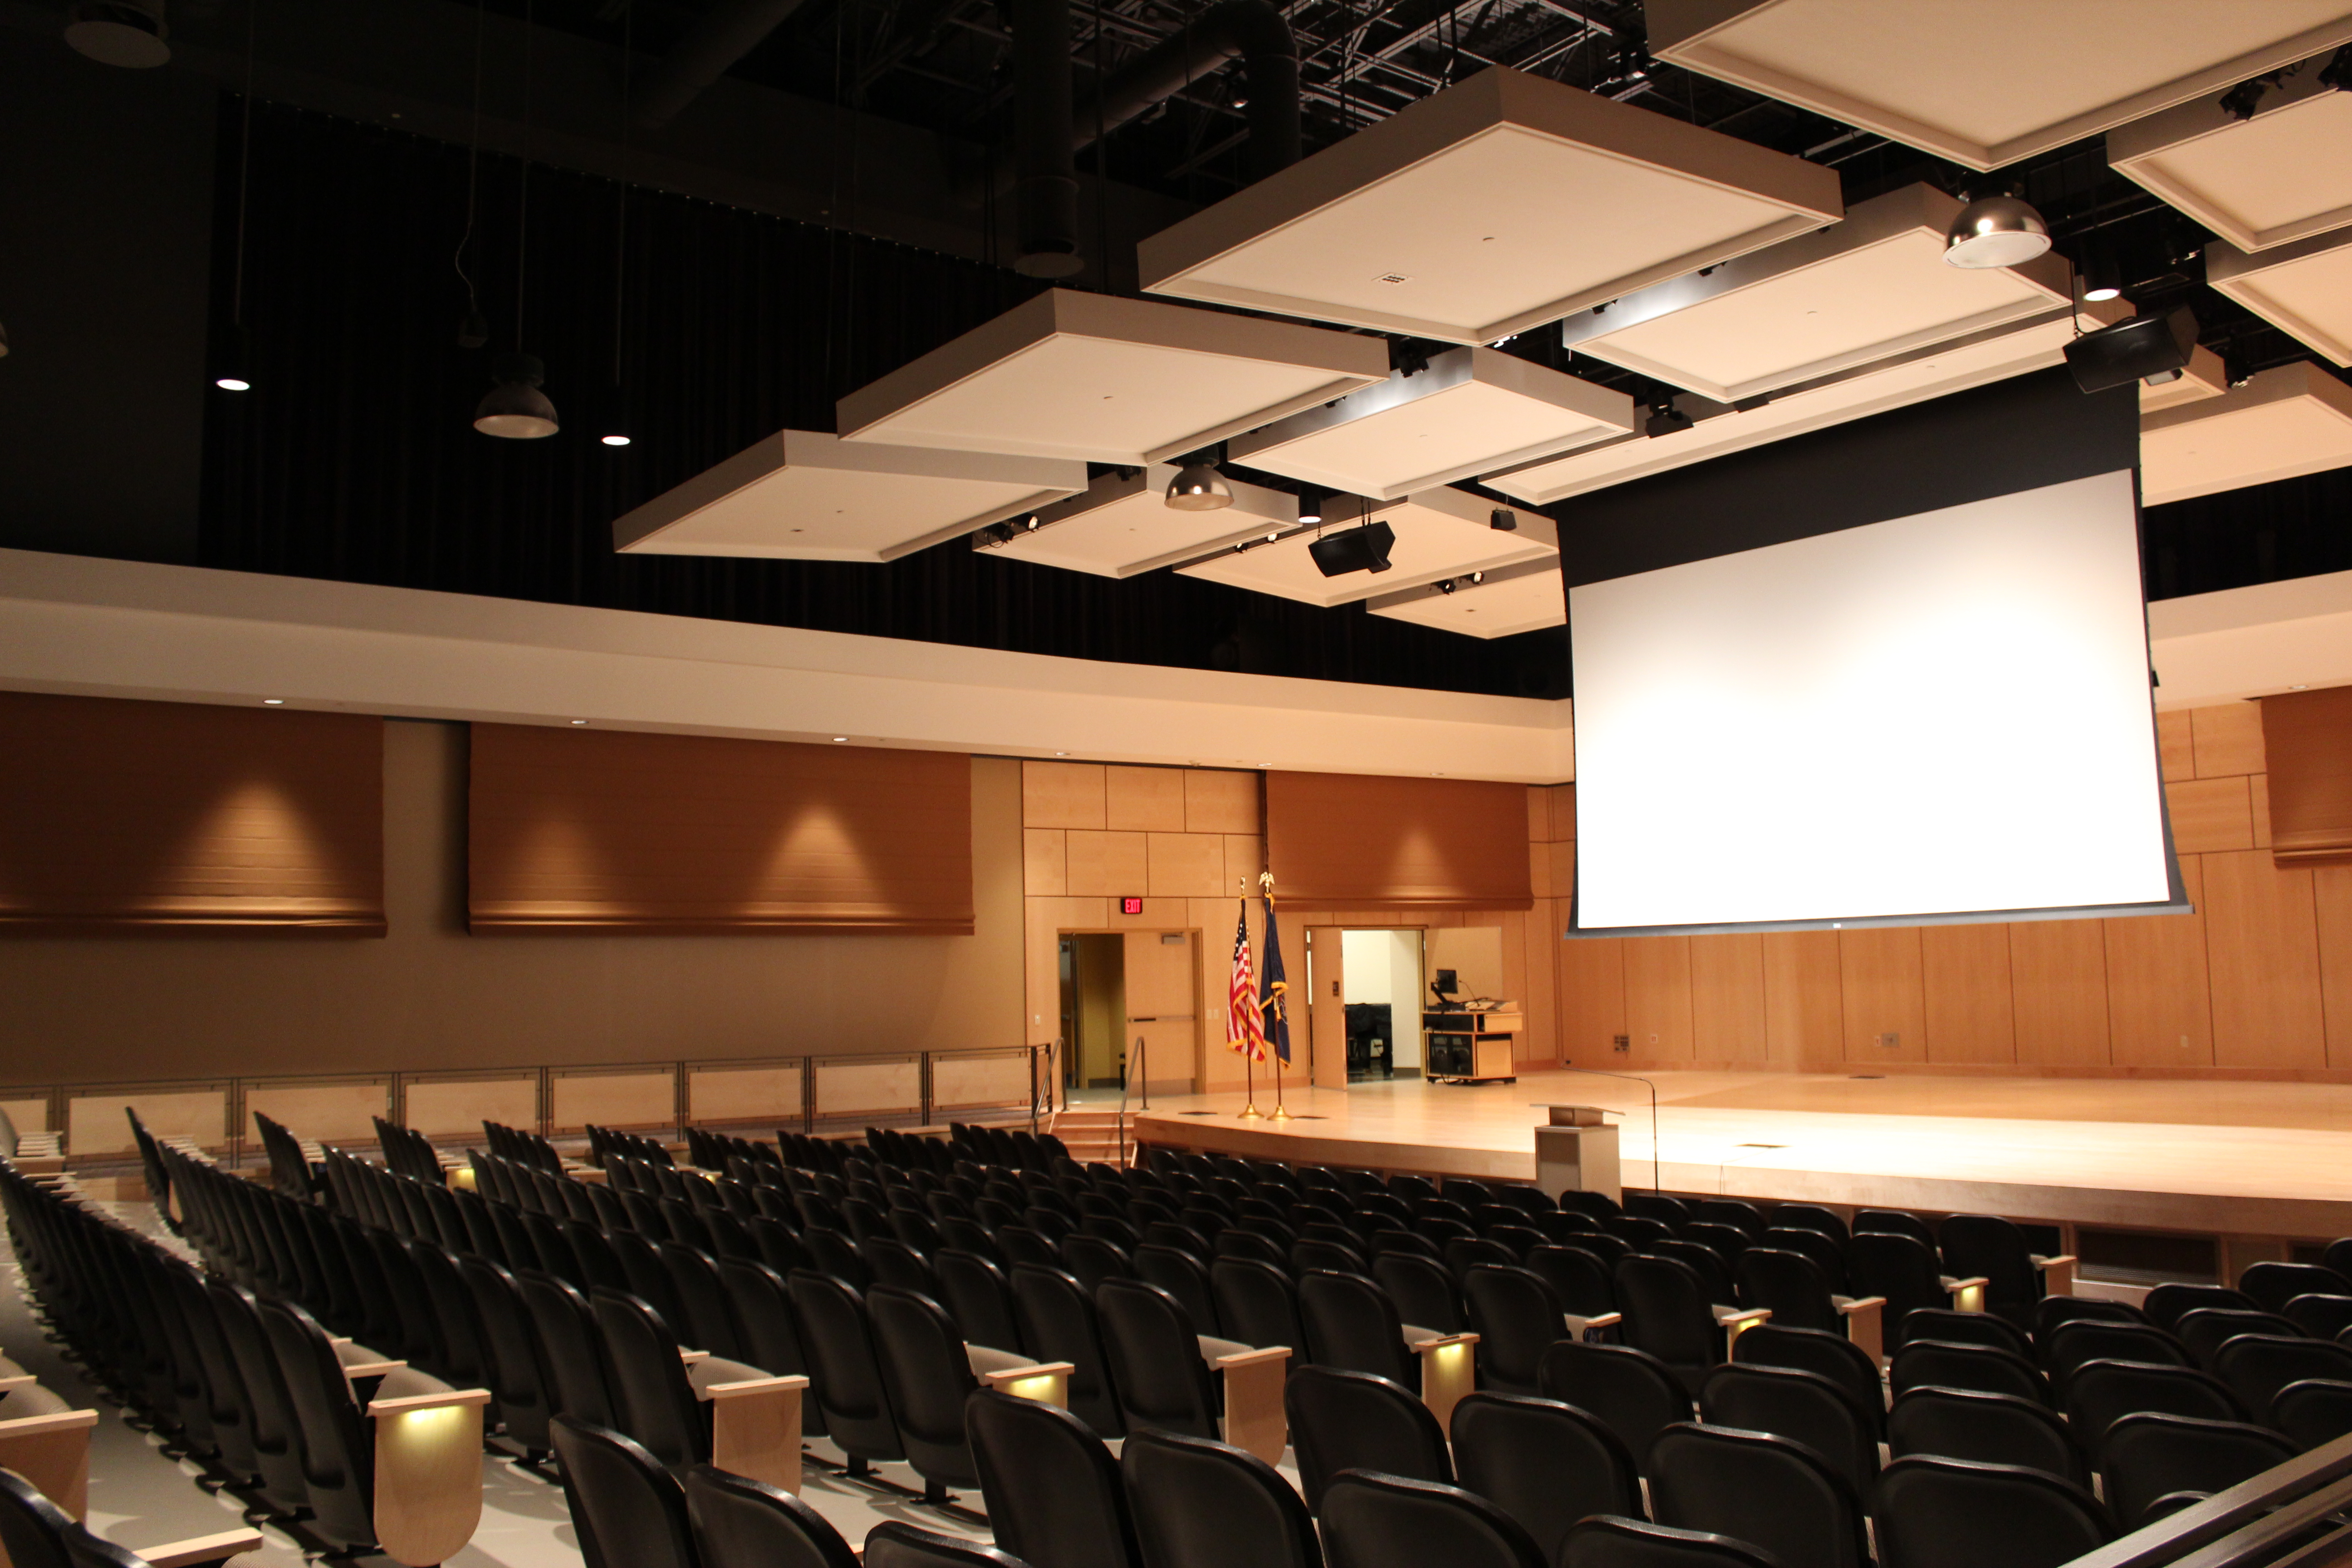 And Performing Arts Center Visual Millersville University